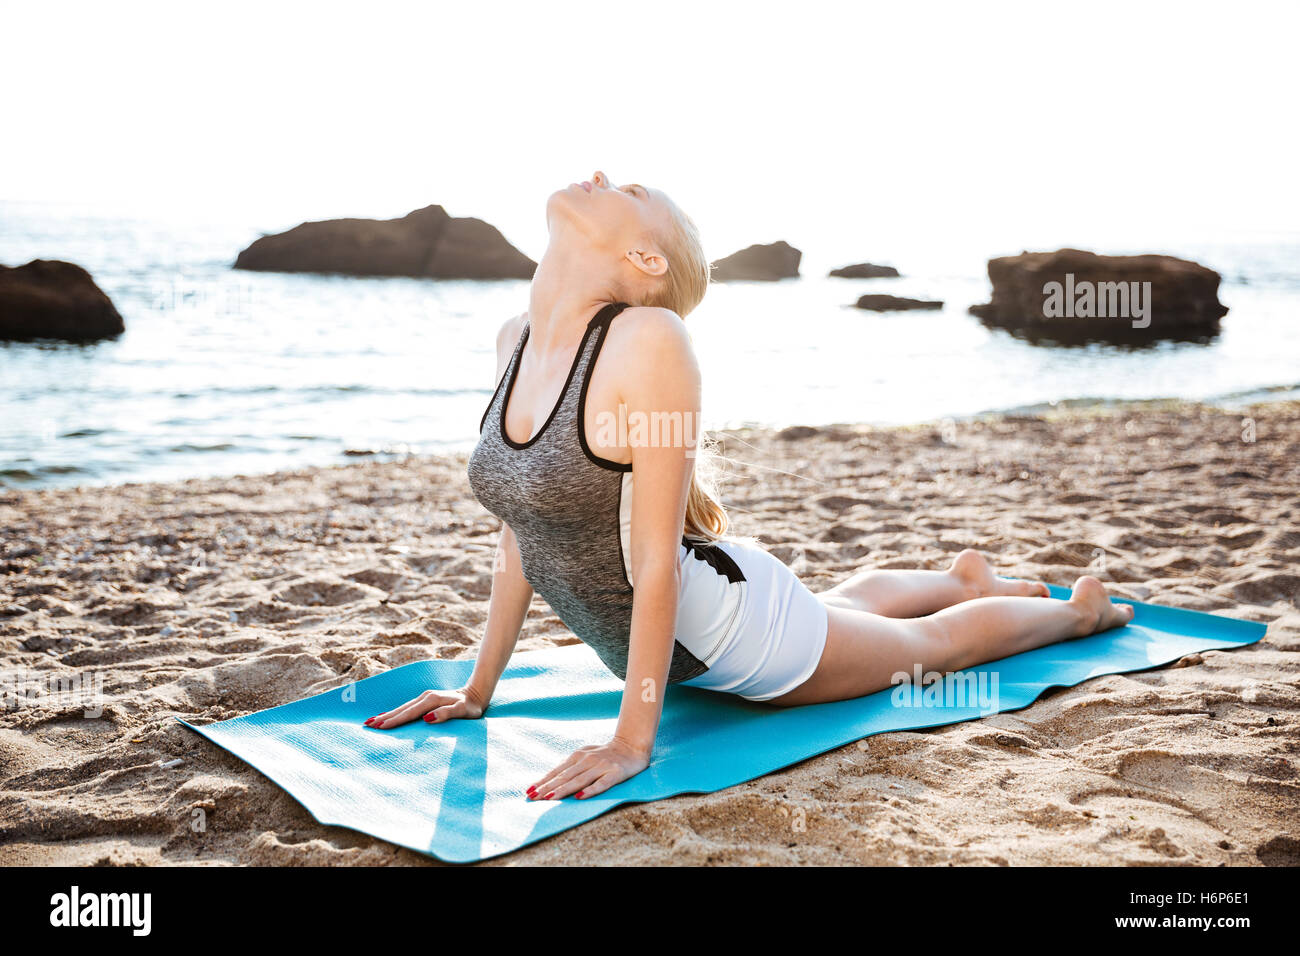 Flexible young woman doing stretching yoga exercises on beach - Stock Image